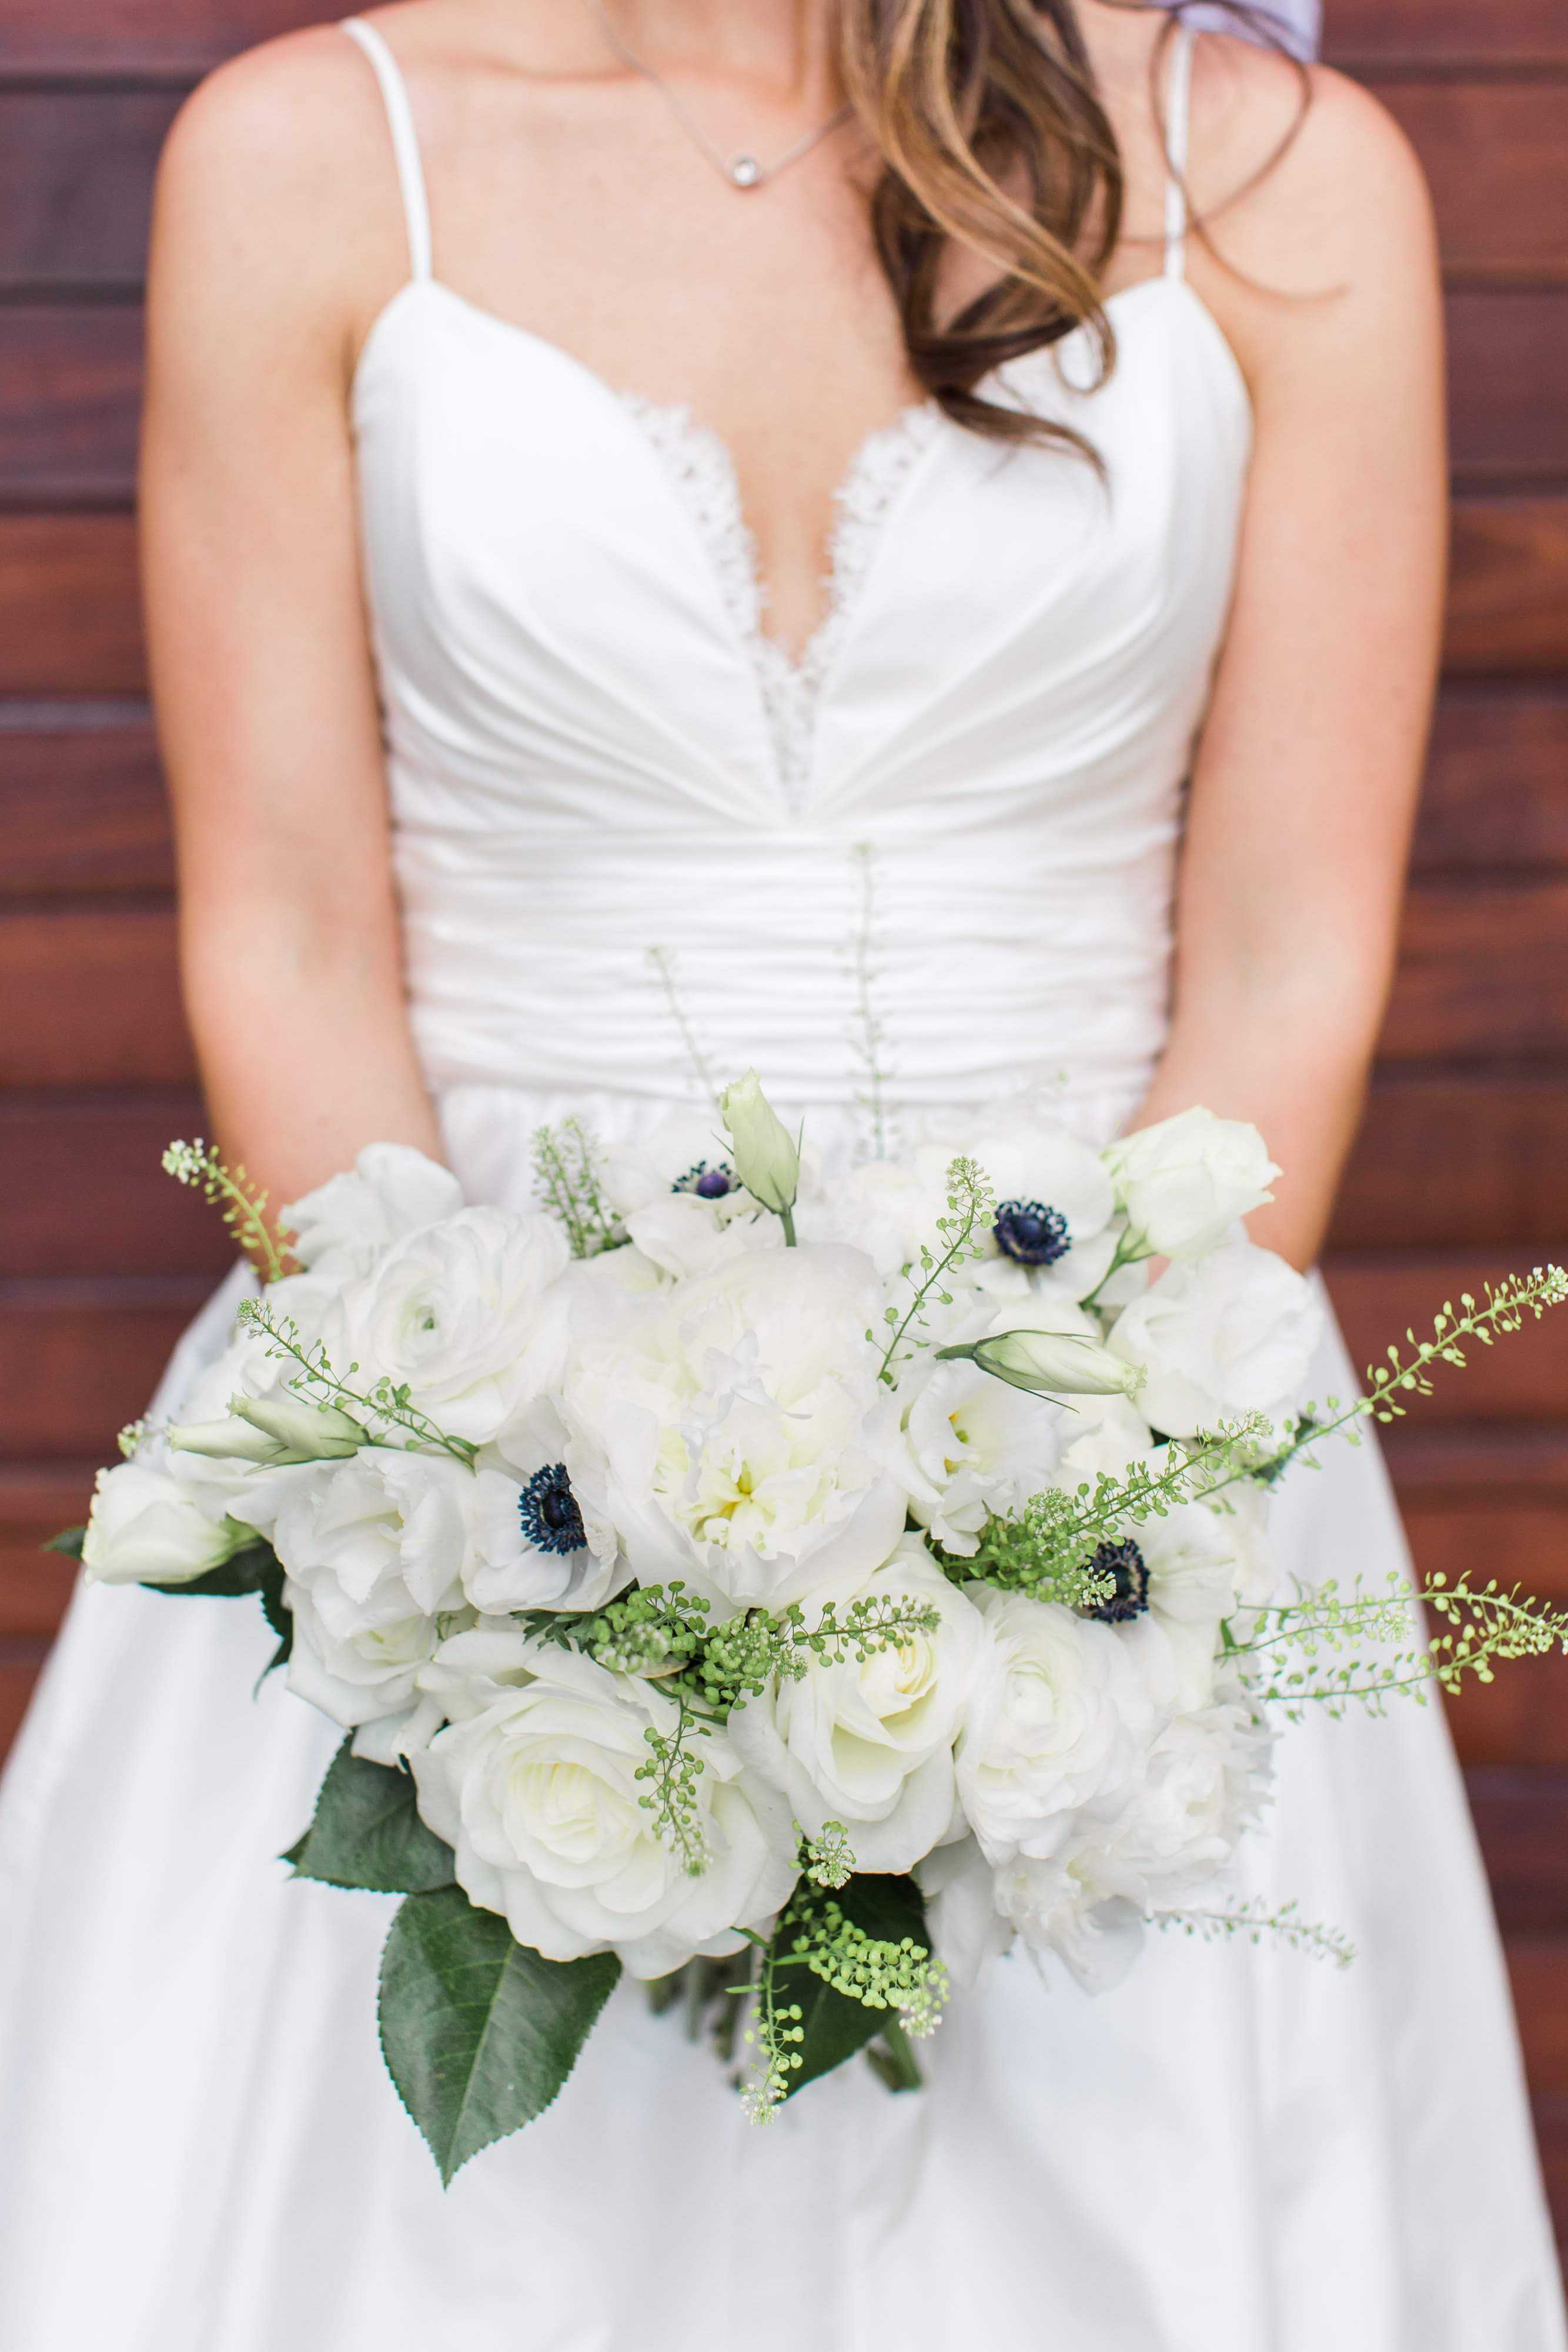 Florist: Wisteria (Image: Birds of a Feather Photography/{ }http://birdsofafeatherphotos.com){ }